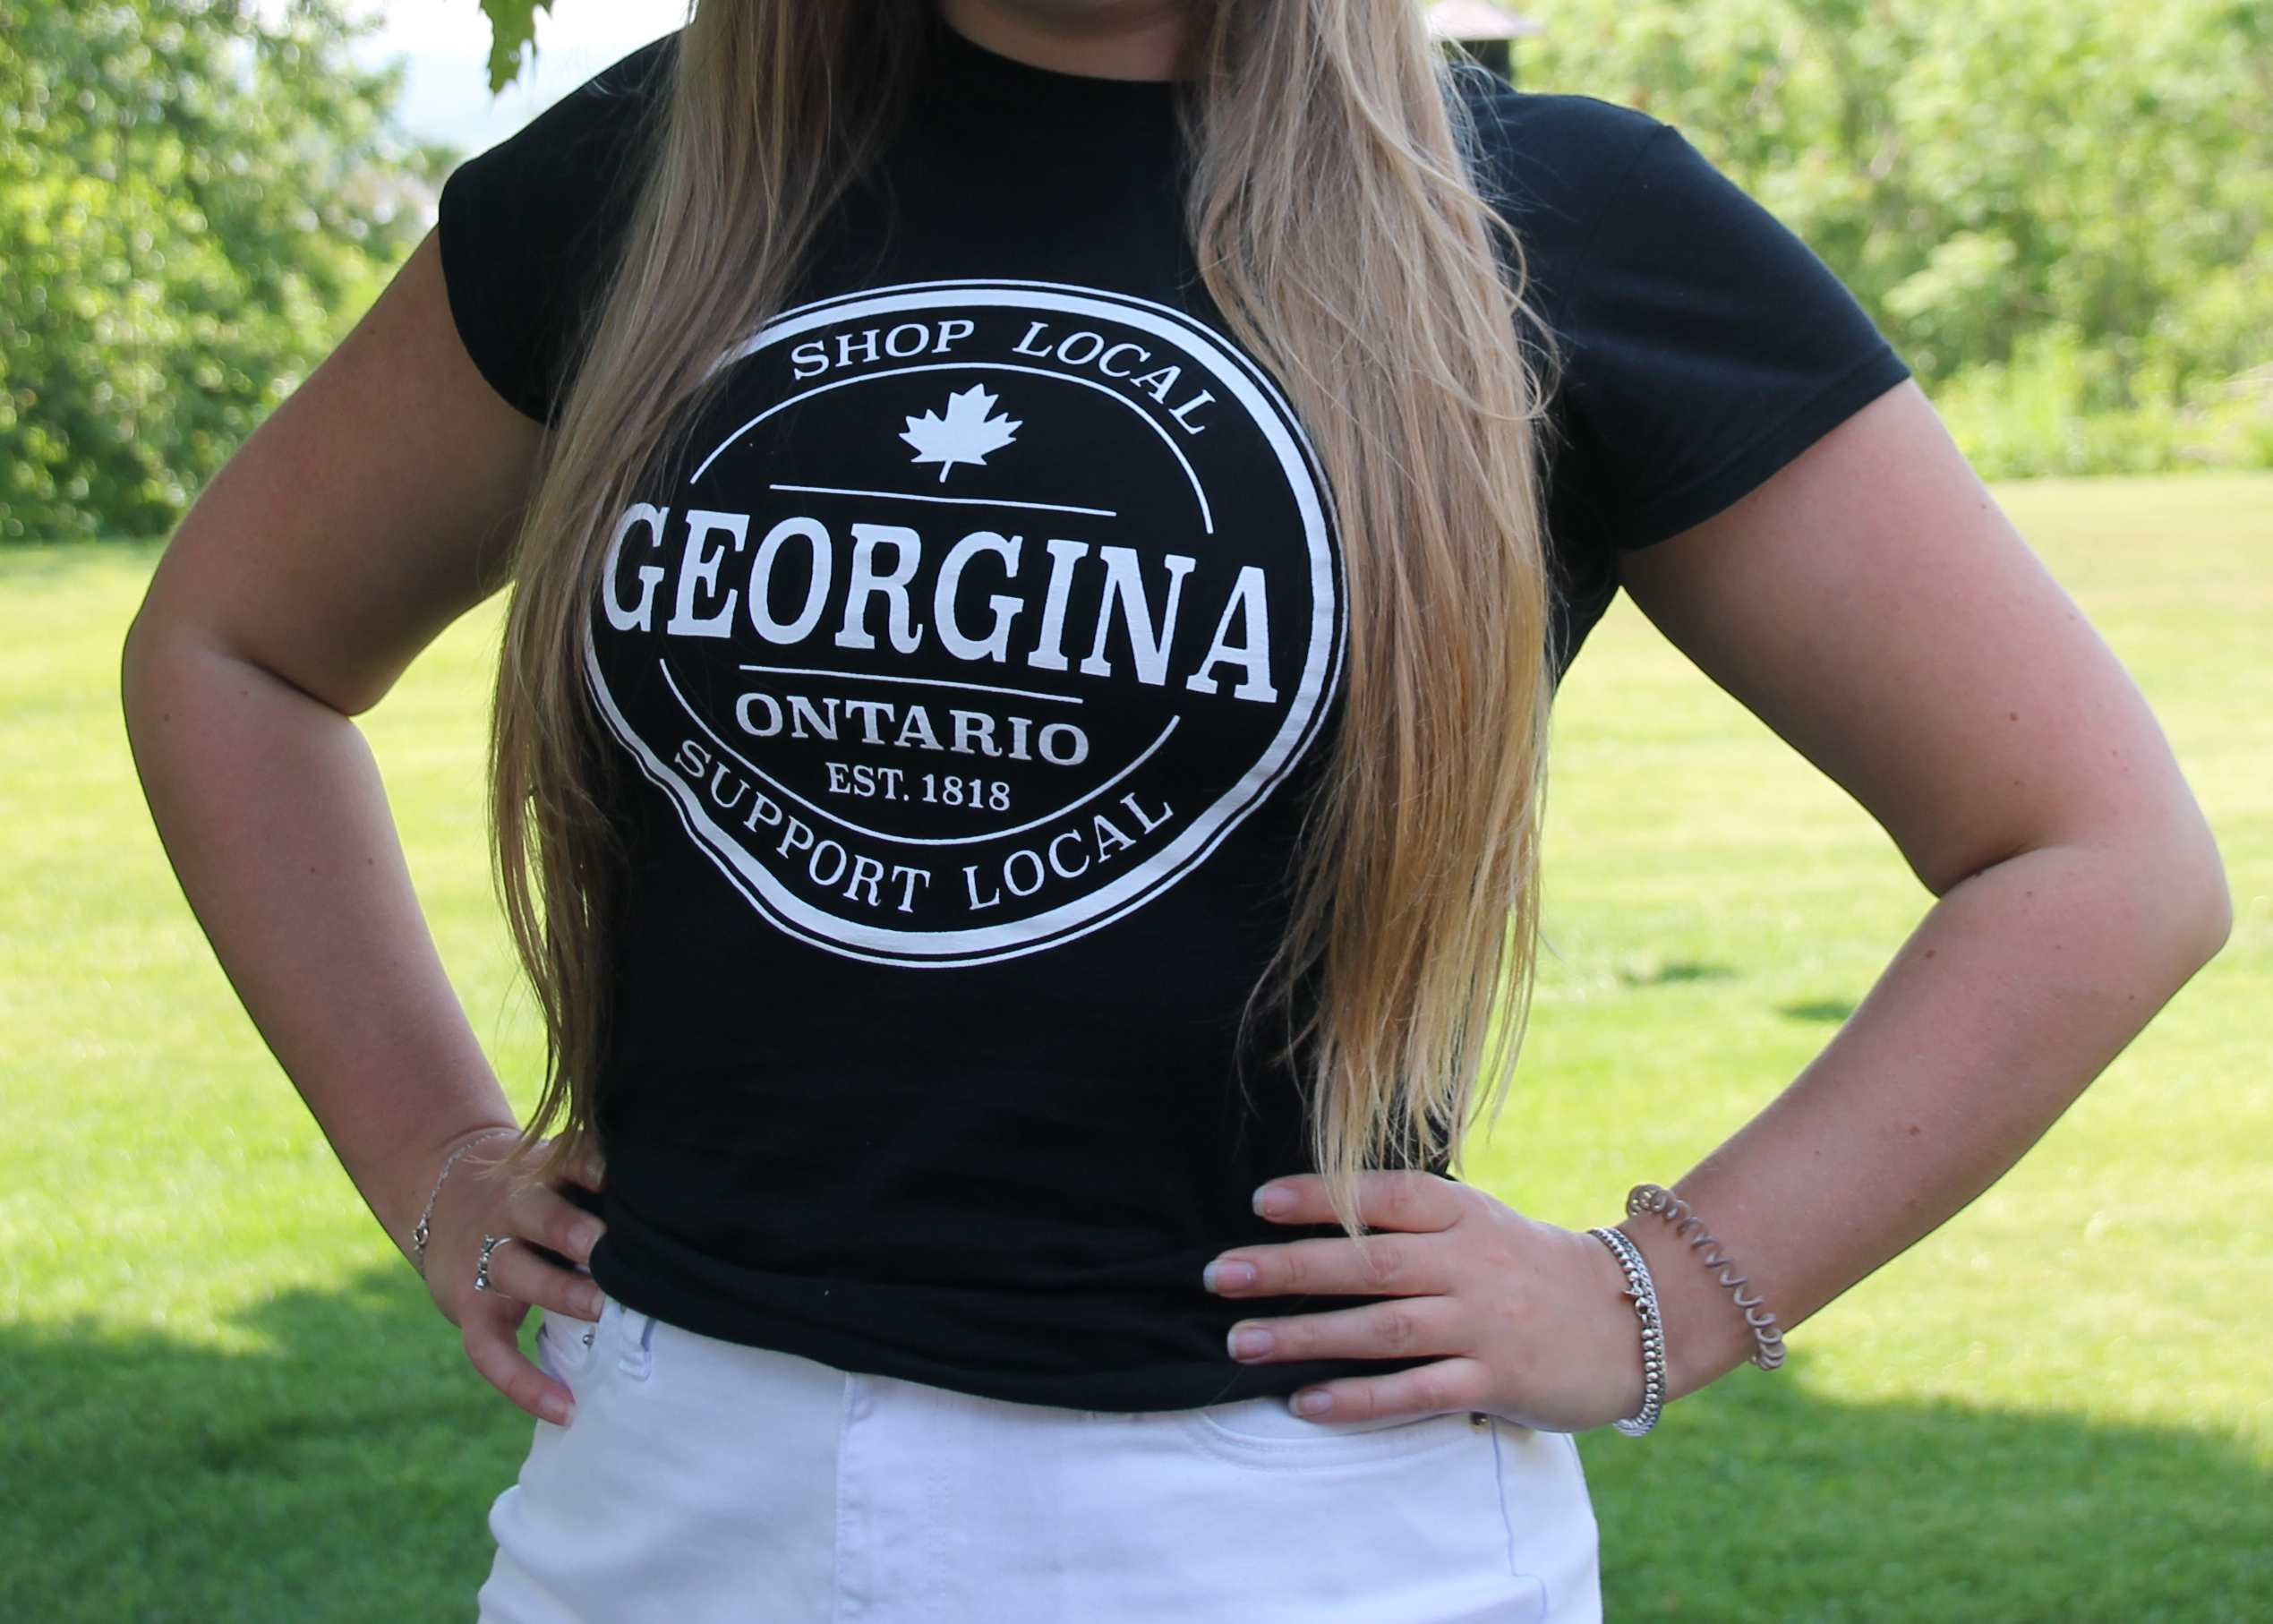 SHOP GEORGINA SWAG!